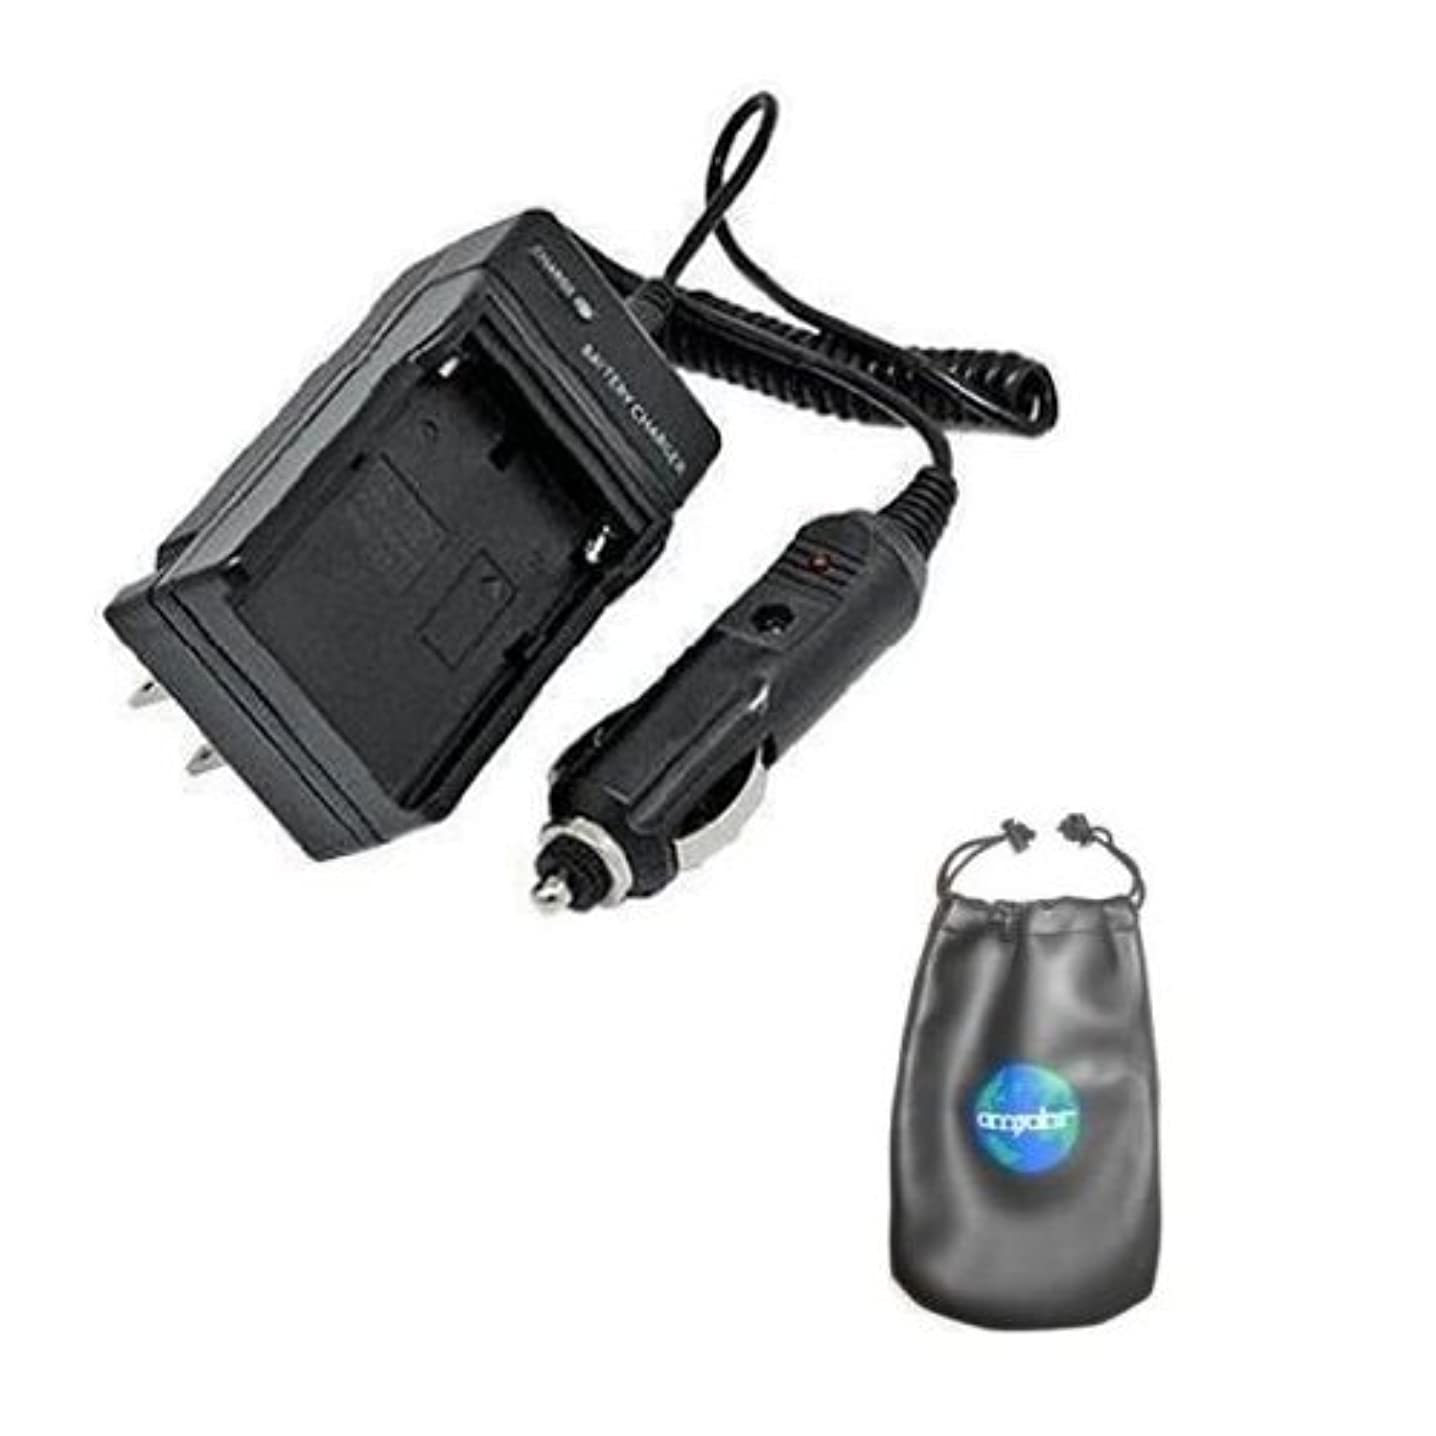 Amsahr C-BP970G Digital Replacement Mini Battery Travel Charger for BP-970G, BP-945, BP-950, BP-950G, BP970 with Lens Accessories Pouch (Gray)